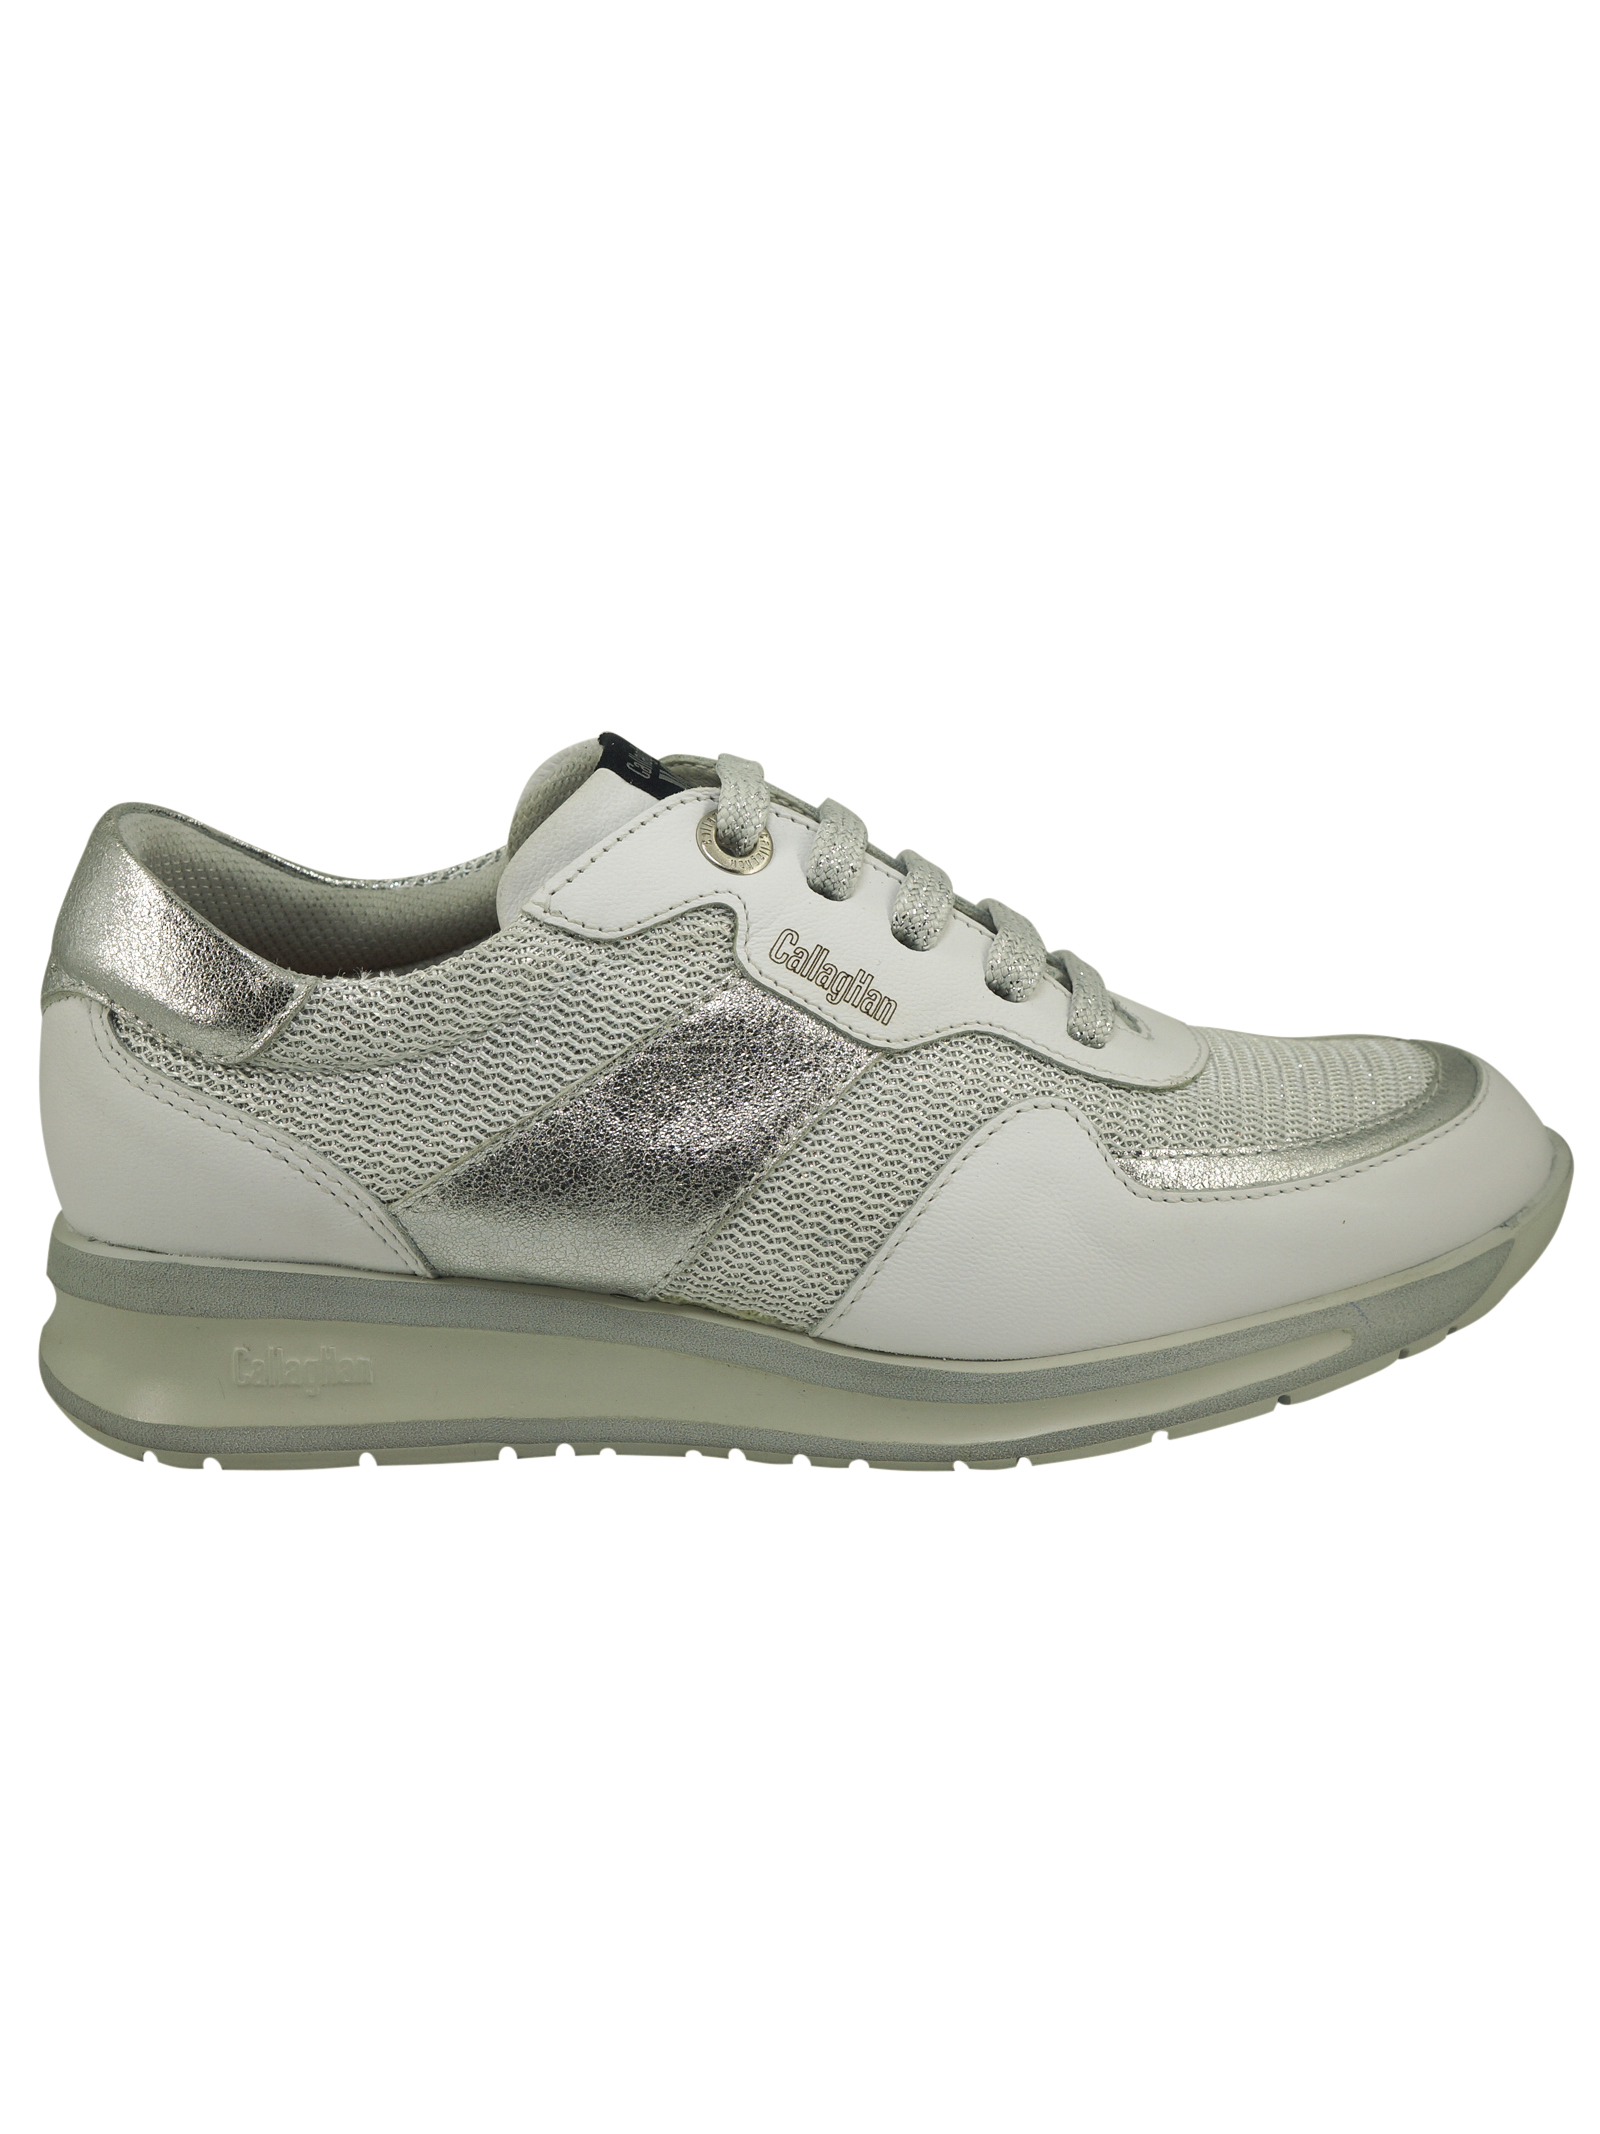 Sneakers Donna in Pelle Callaghan Callaghan | Sneakers | 87199ARGENTO